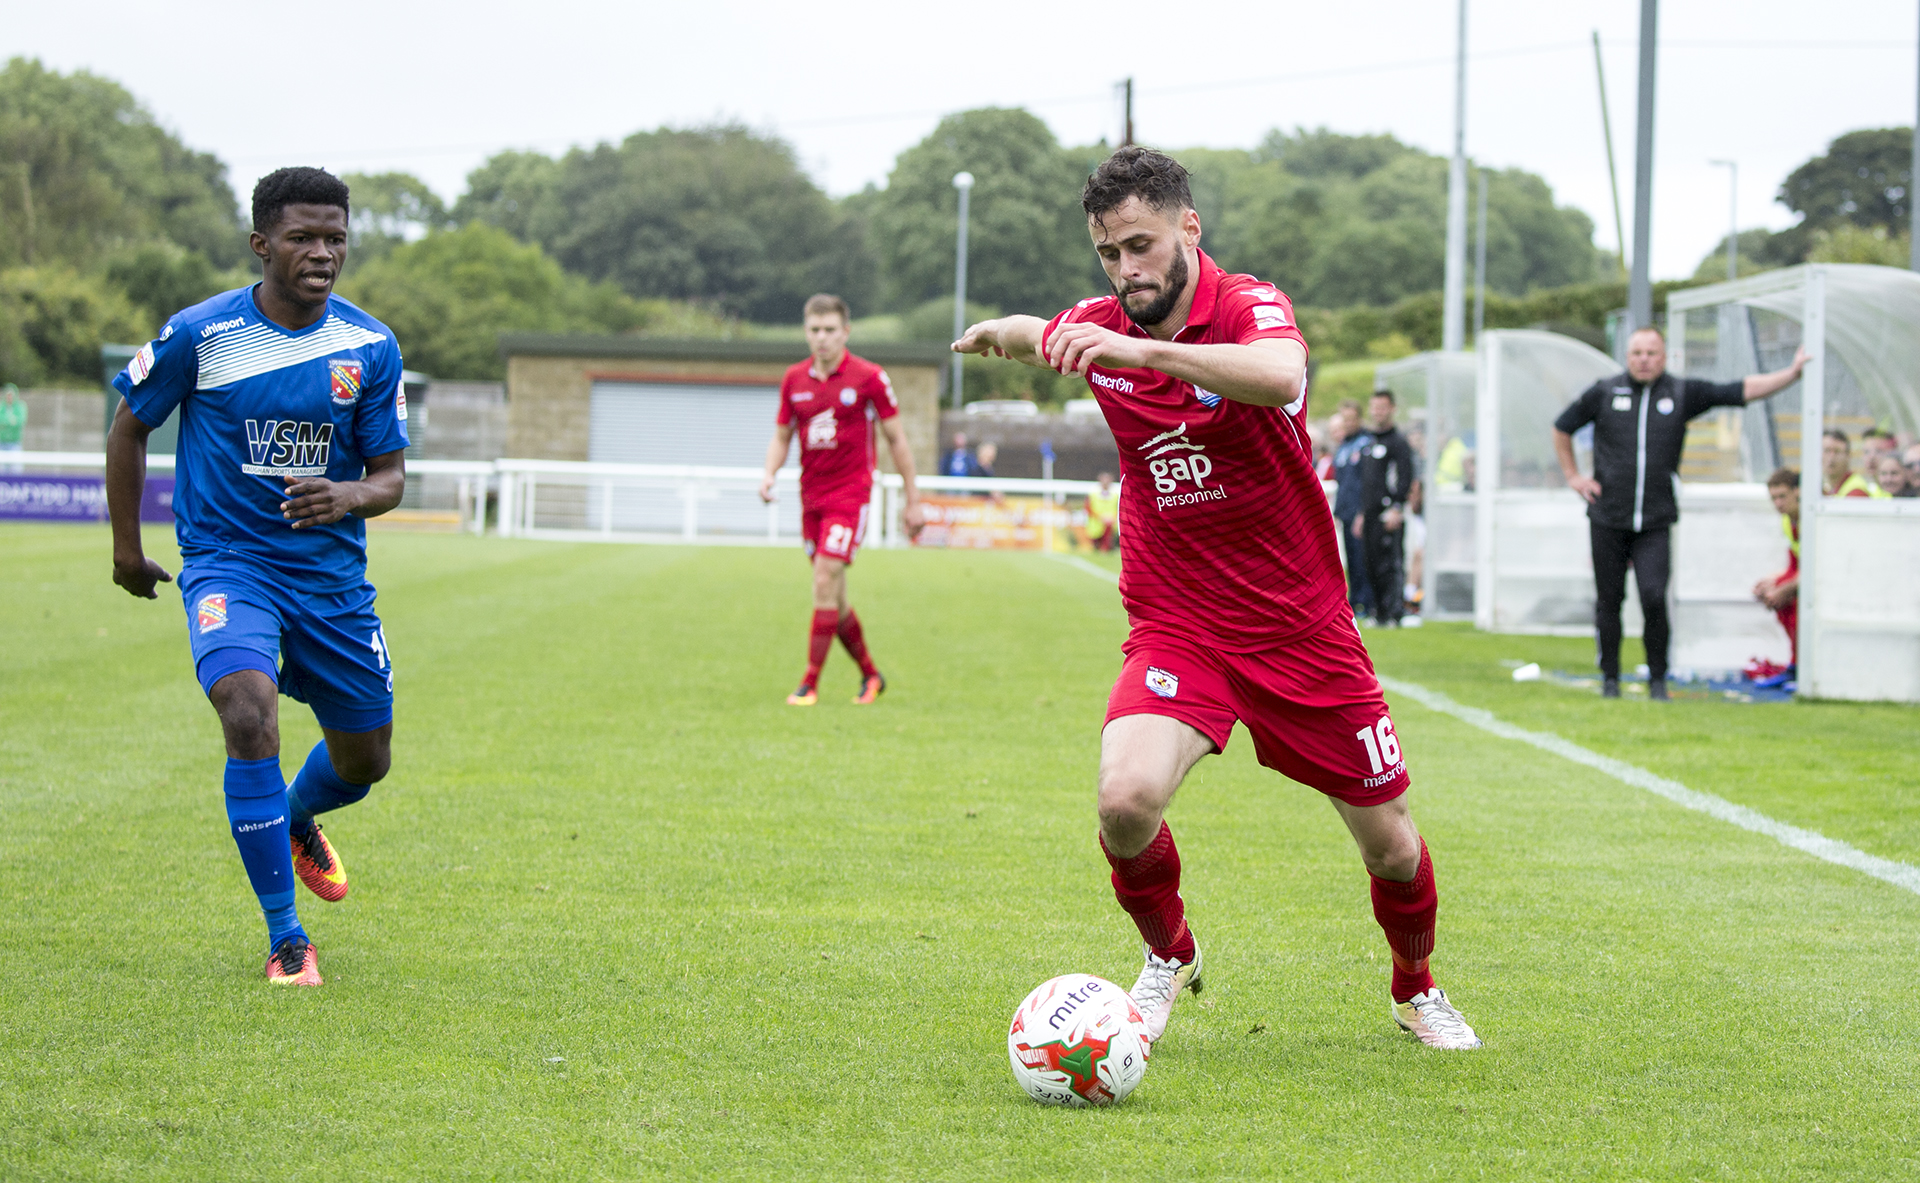 Nathan Woolfe takes on the Bangor City defence - © NCM Media